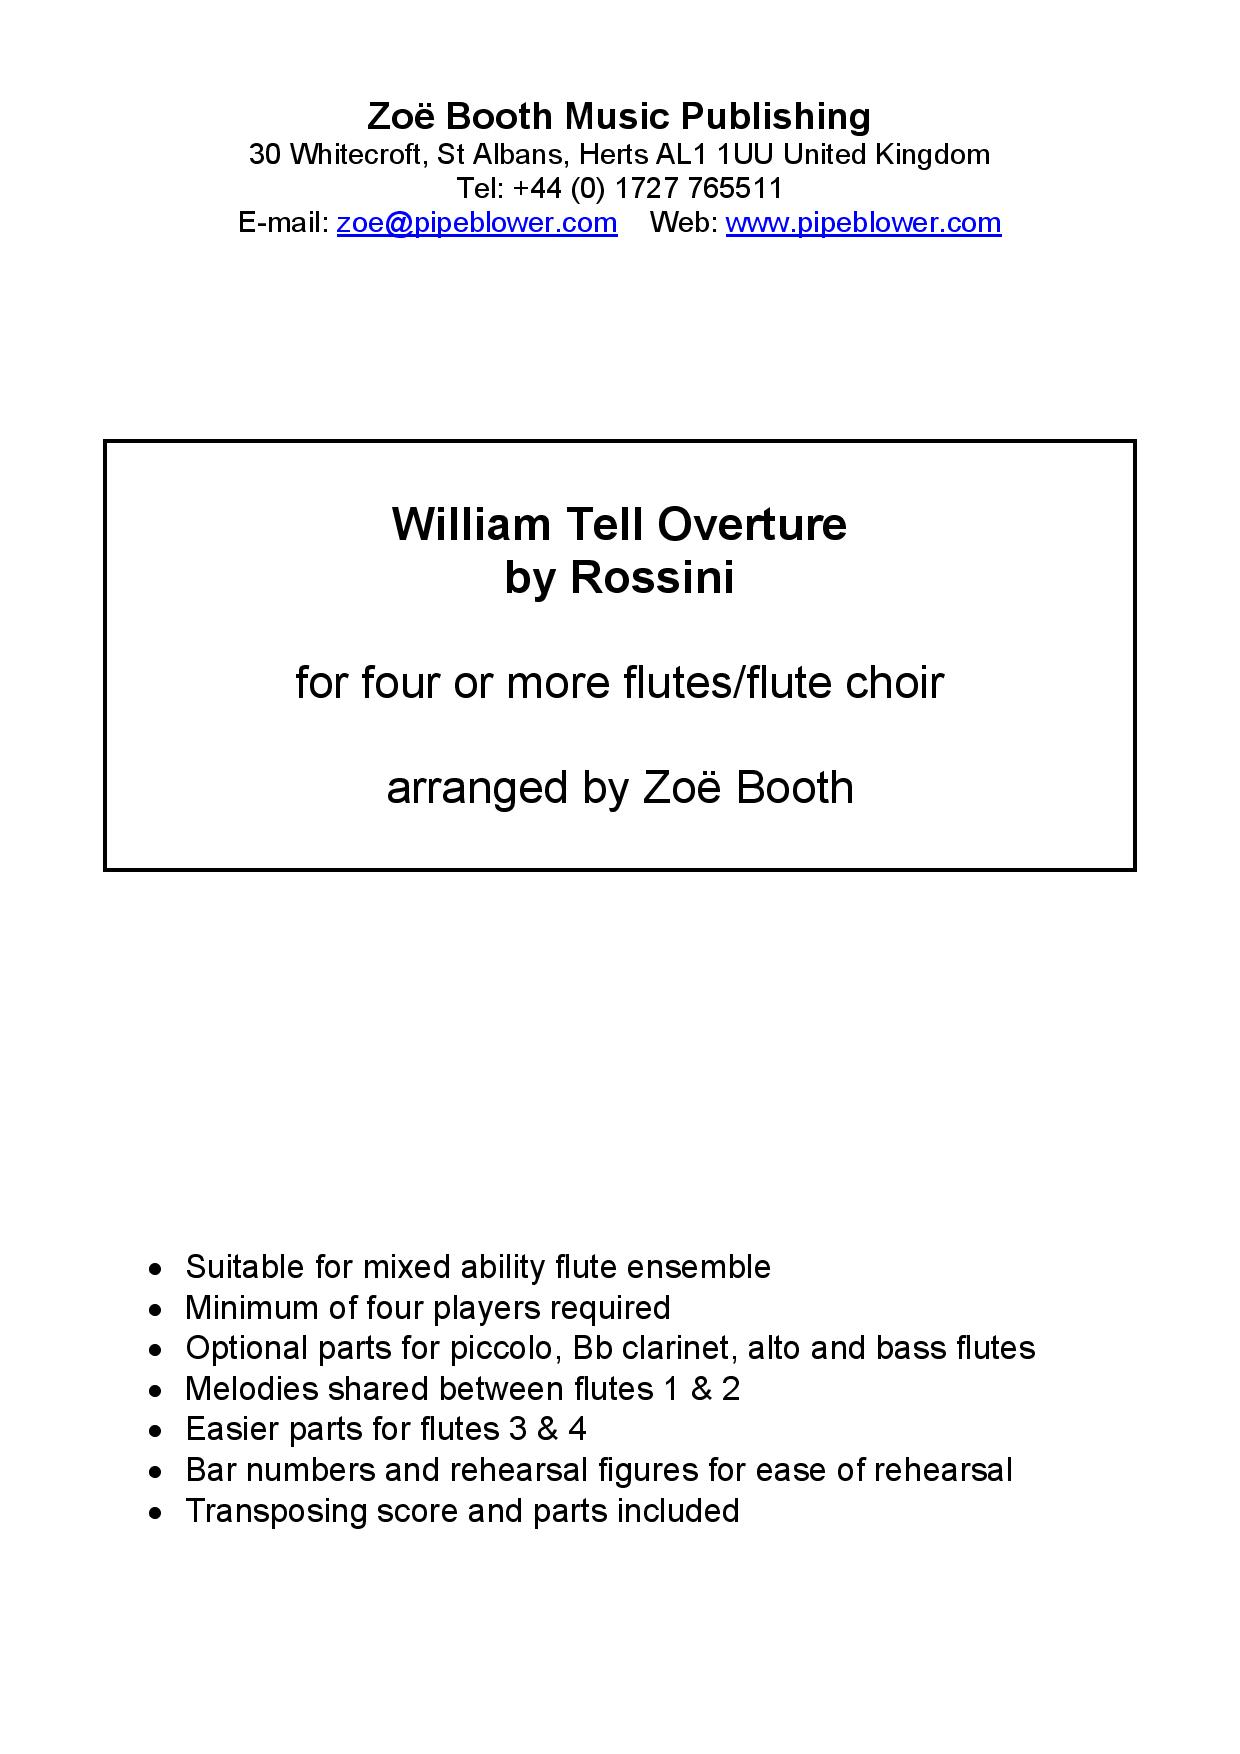 The William Tell Overture by Rossini,  arranged by Zoë Booth for four or more flutes/flute choir